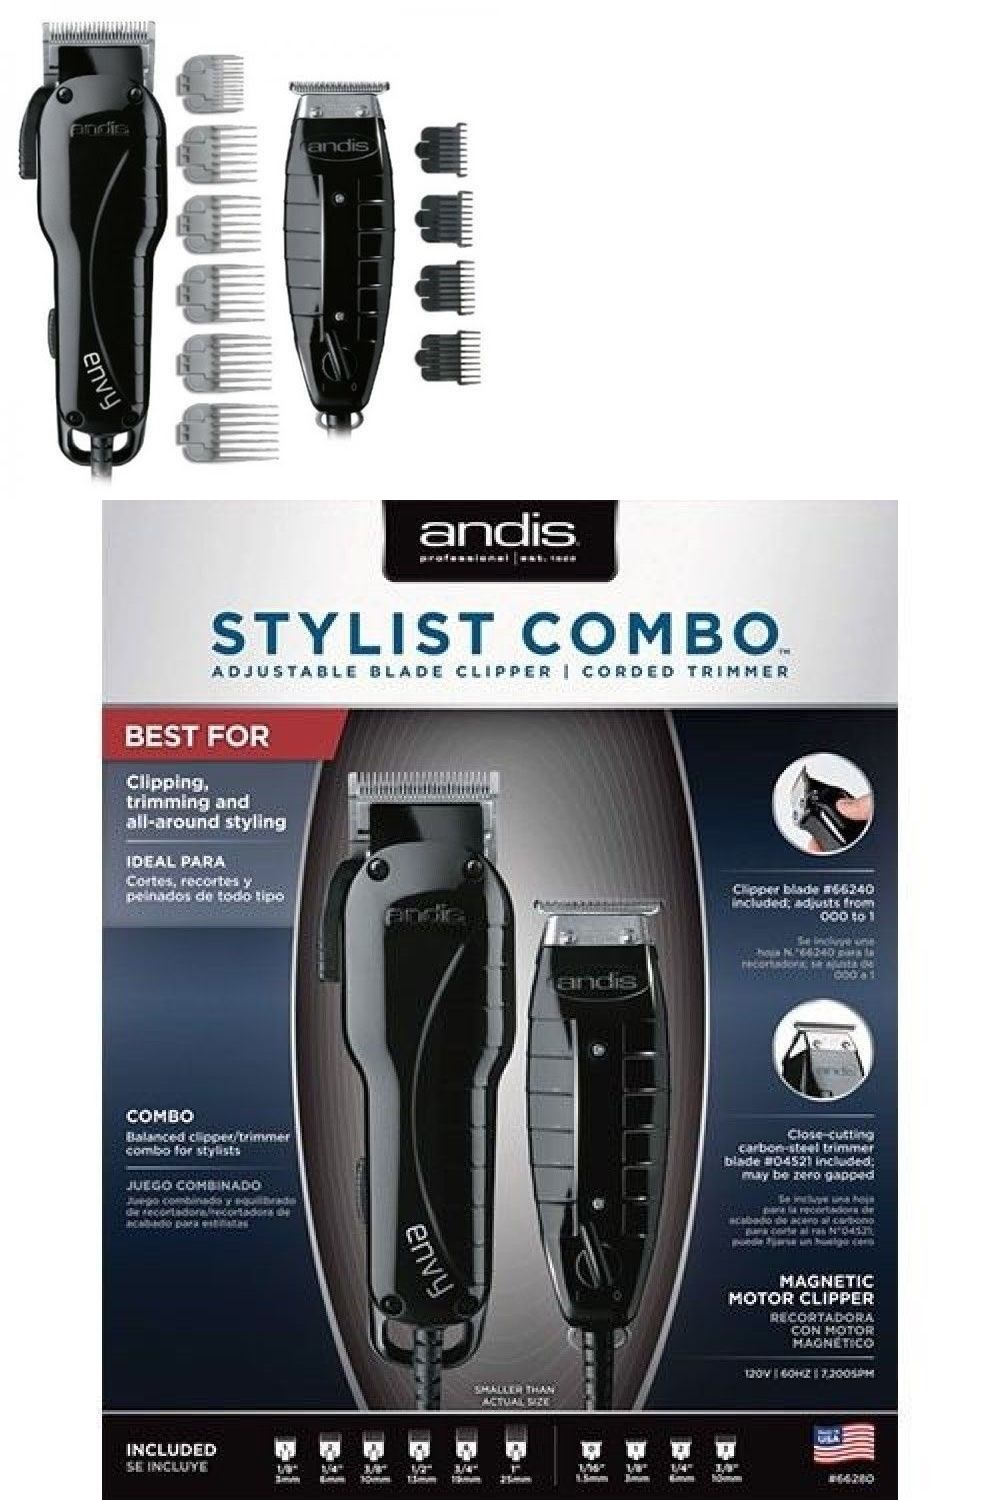 Clippers And Trimmers Andis Professional Stylist Combo T Outliner Trimmer Envy Clipper Black 66280 It Now Only 79 49 On Ebay